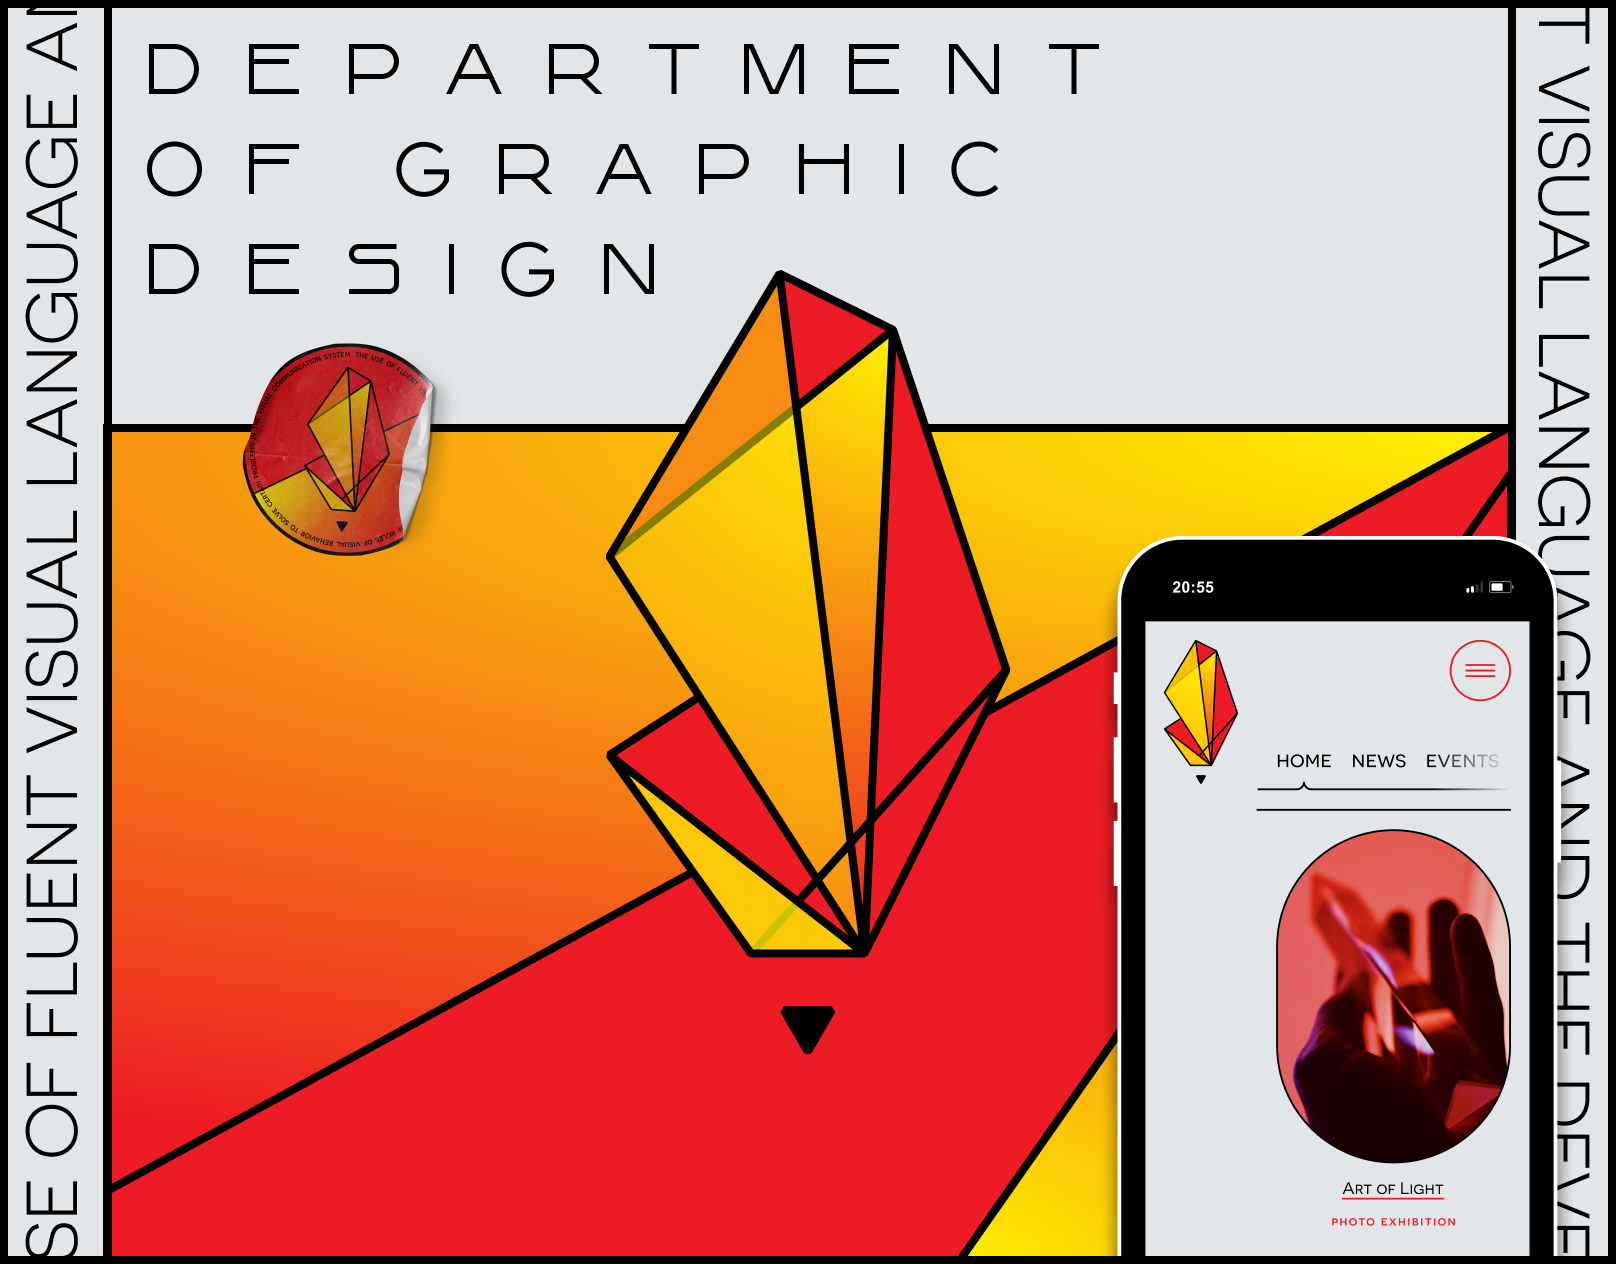 Department of Graphic Design Corporate Identity